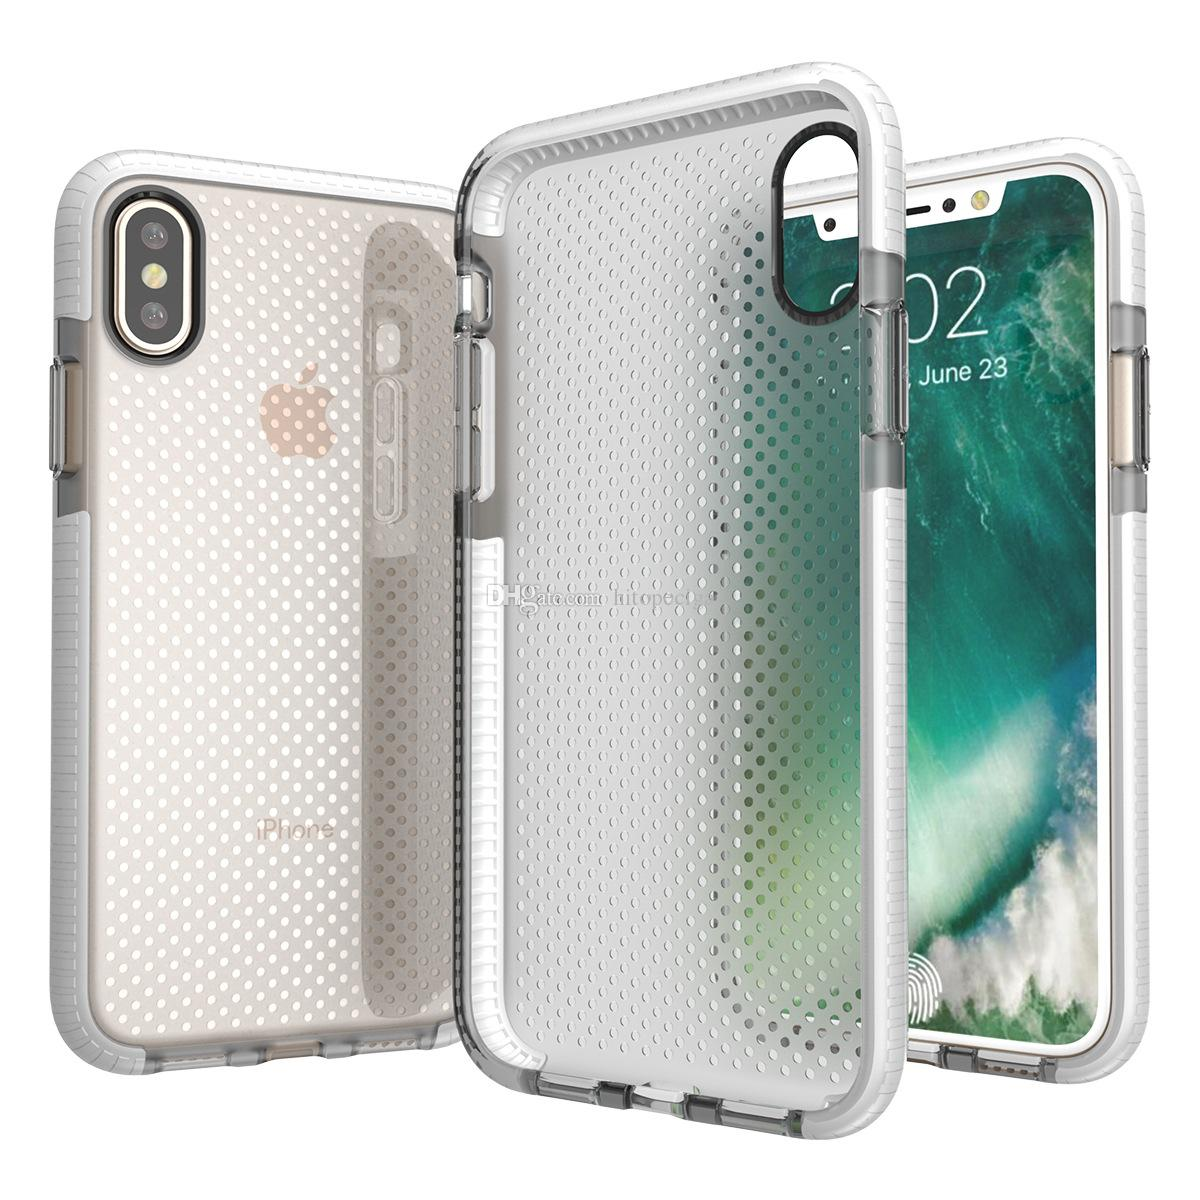 ultra-thin Transparent Clear Soft TPU Drop Protection Cases for Iphone 6 7 8 8plus XS XR XS Max Samsung S9 S9plus Note 9